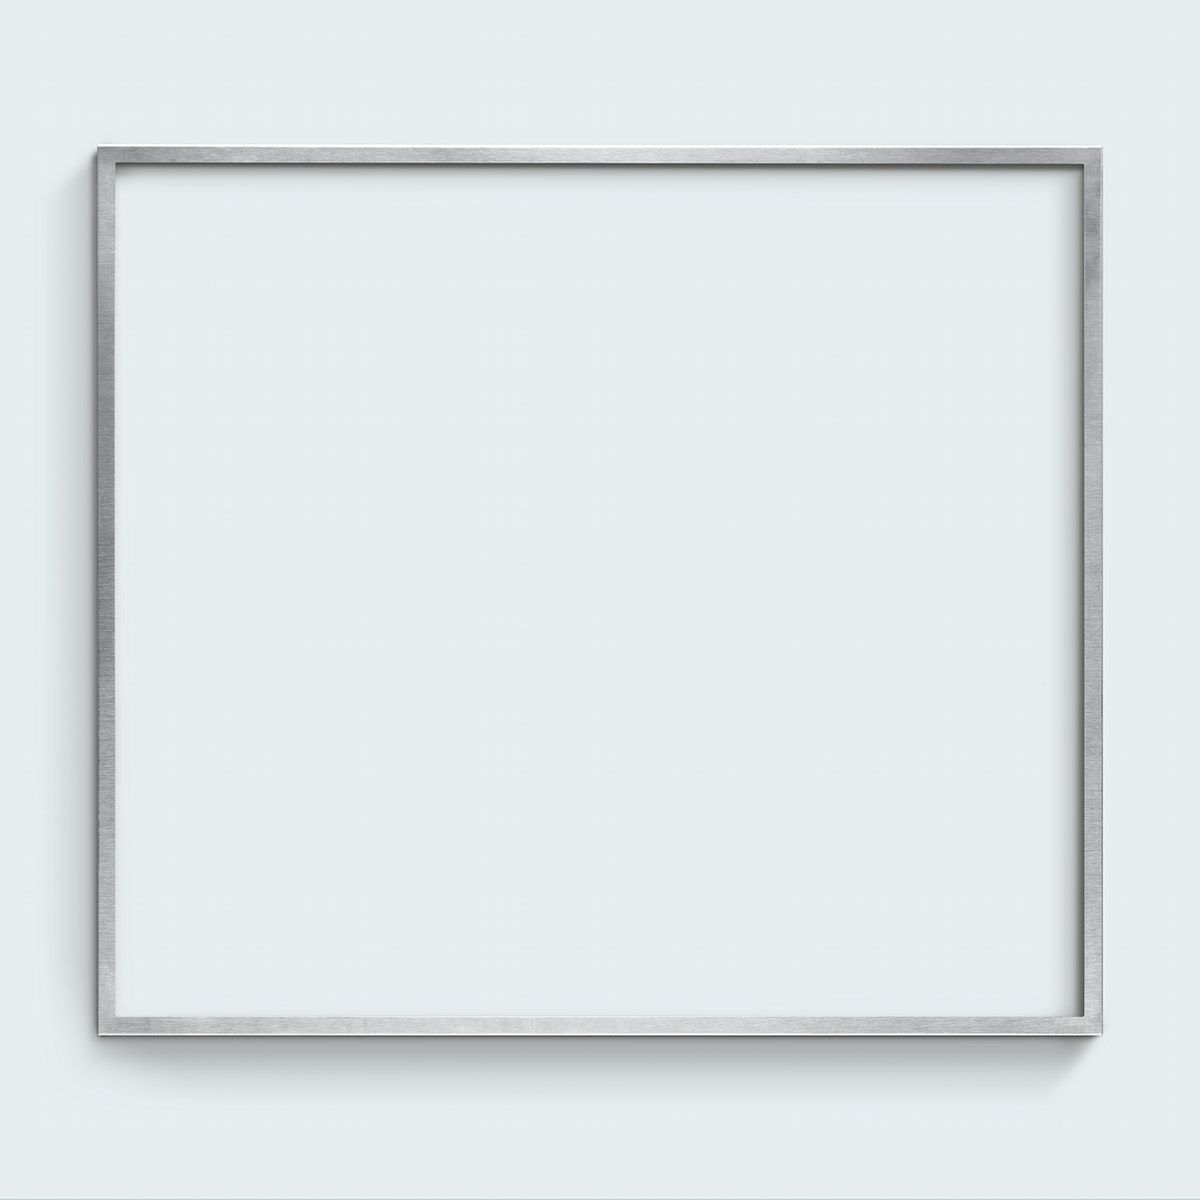 Download Premium Psd Of Silver Square Frame On Gray Background 2349888 Square Frames Frame Gray Background